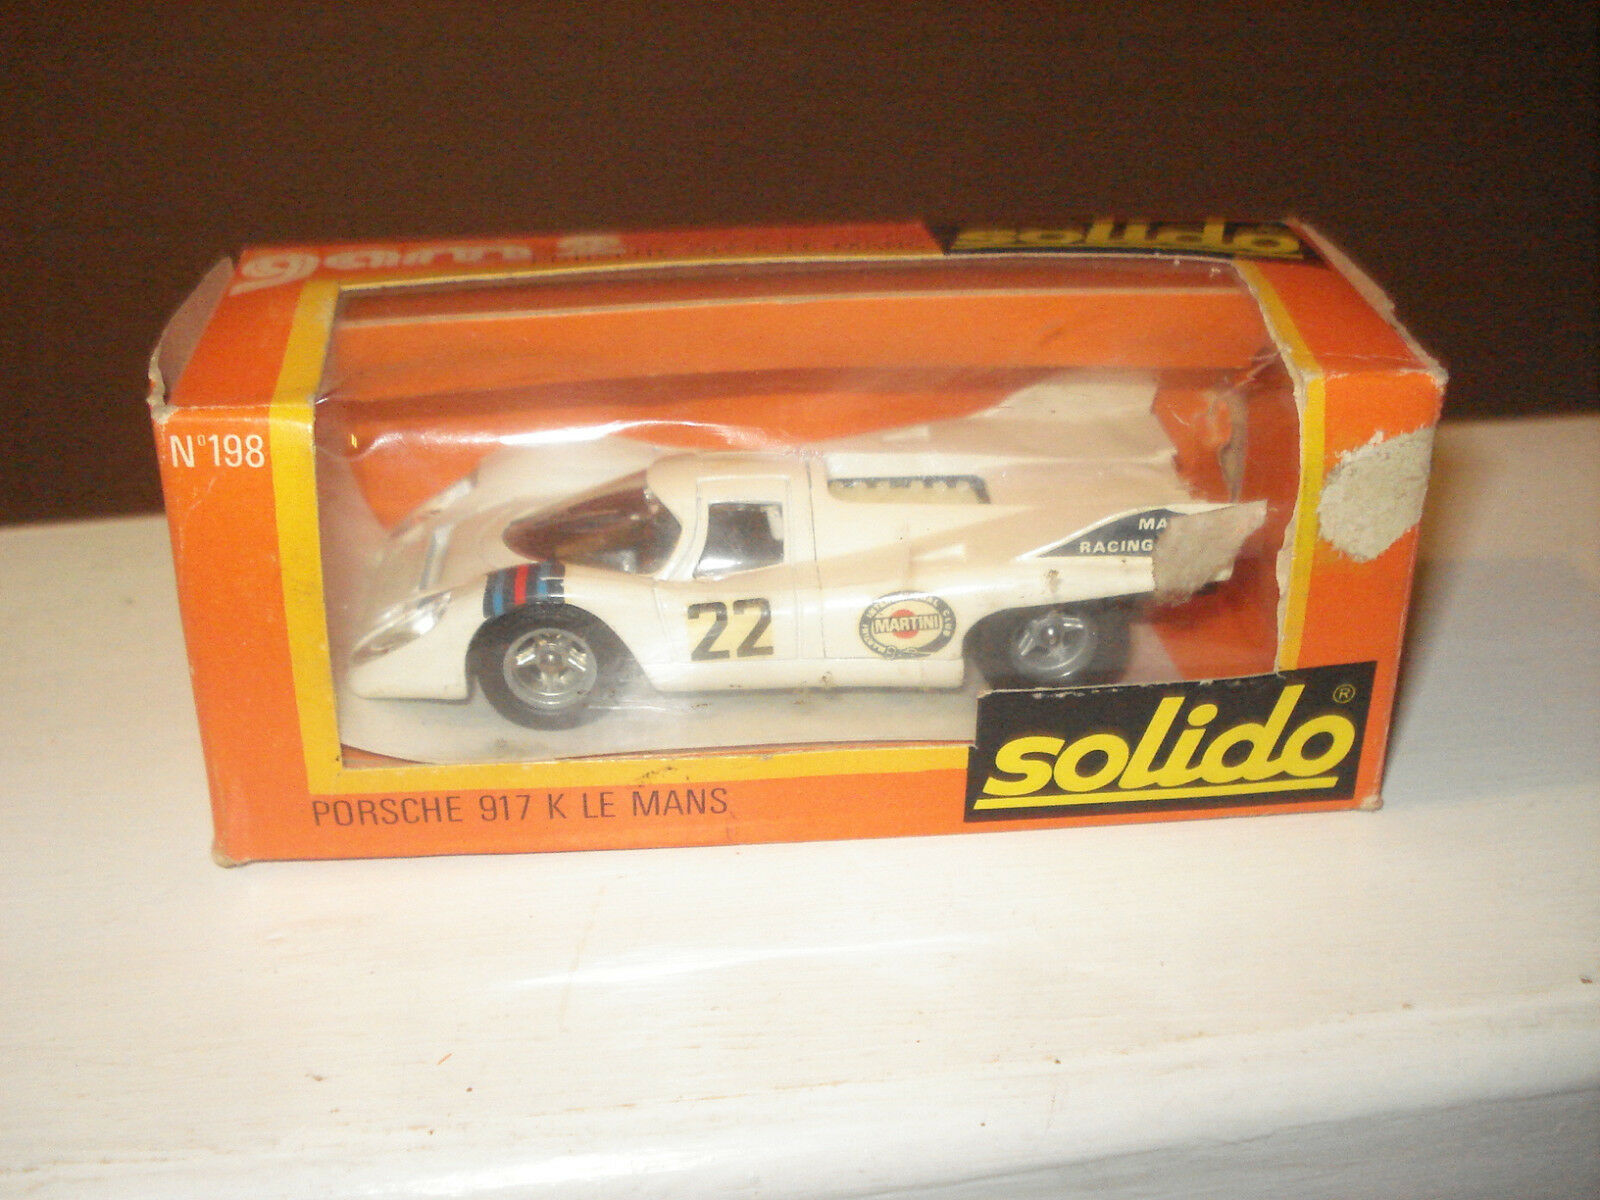 RARE Vintage 1 43 Boxed Solido Porsche 917K Le Mans; No 198 Excellent Condition